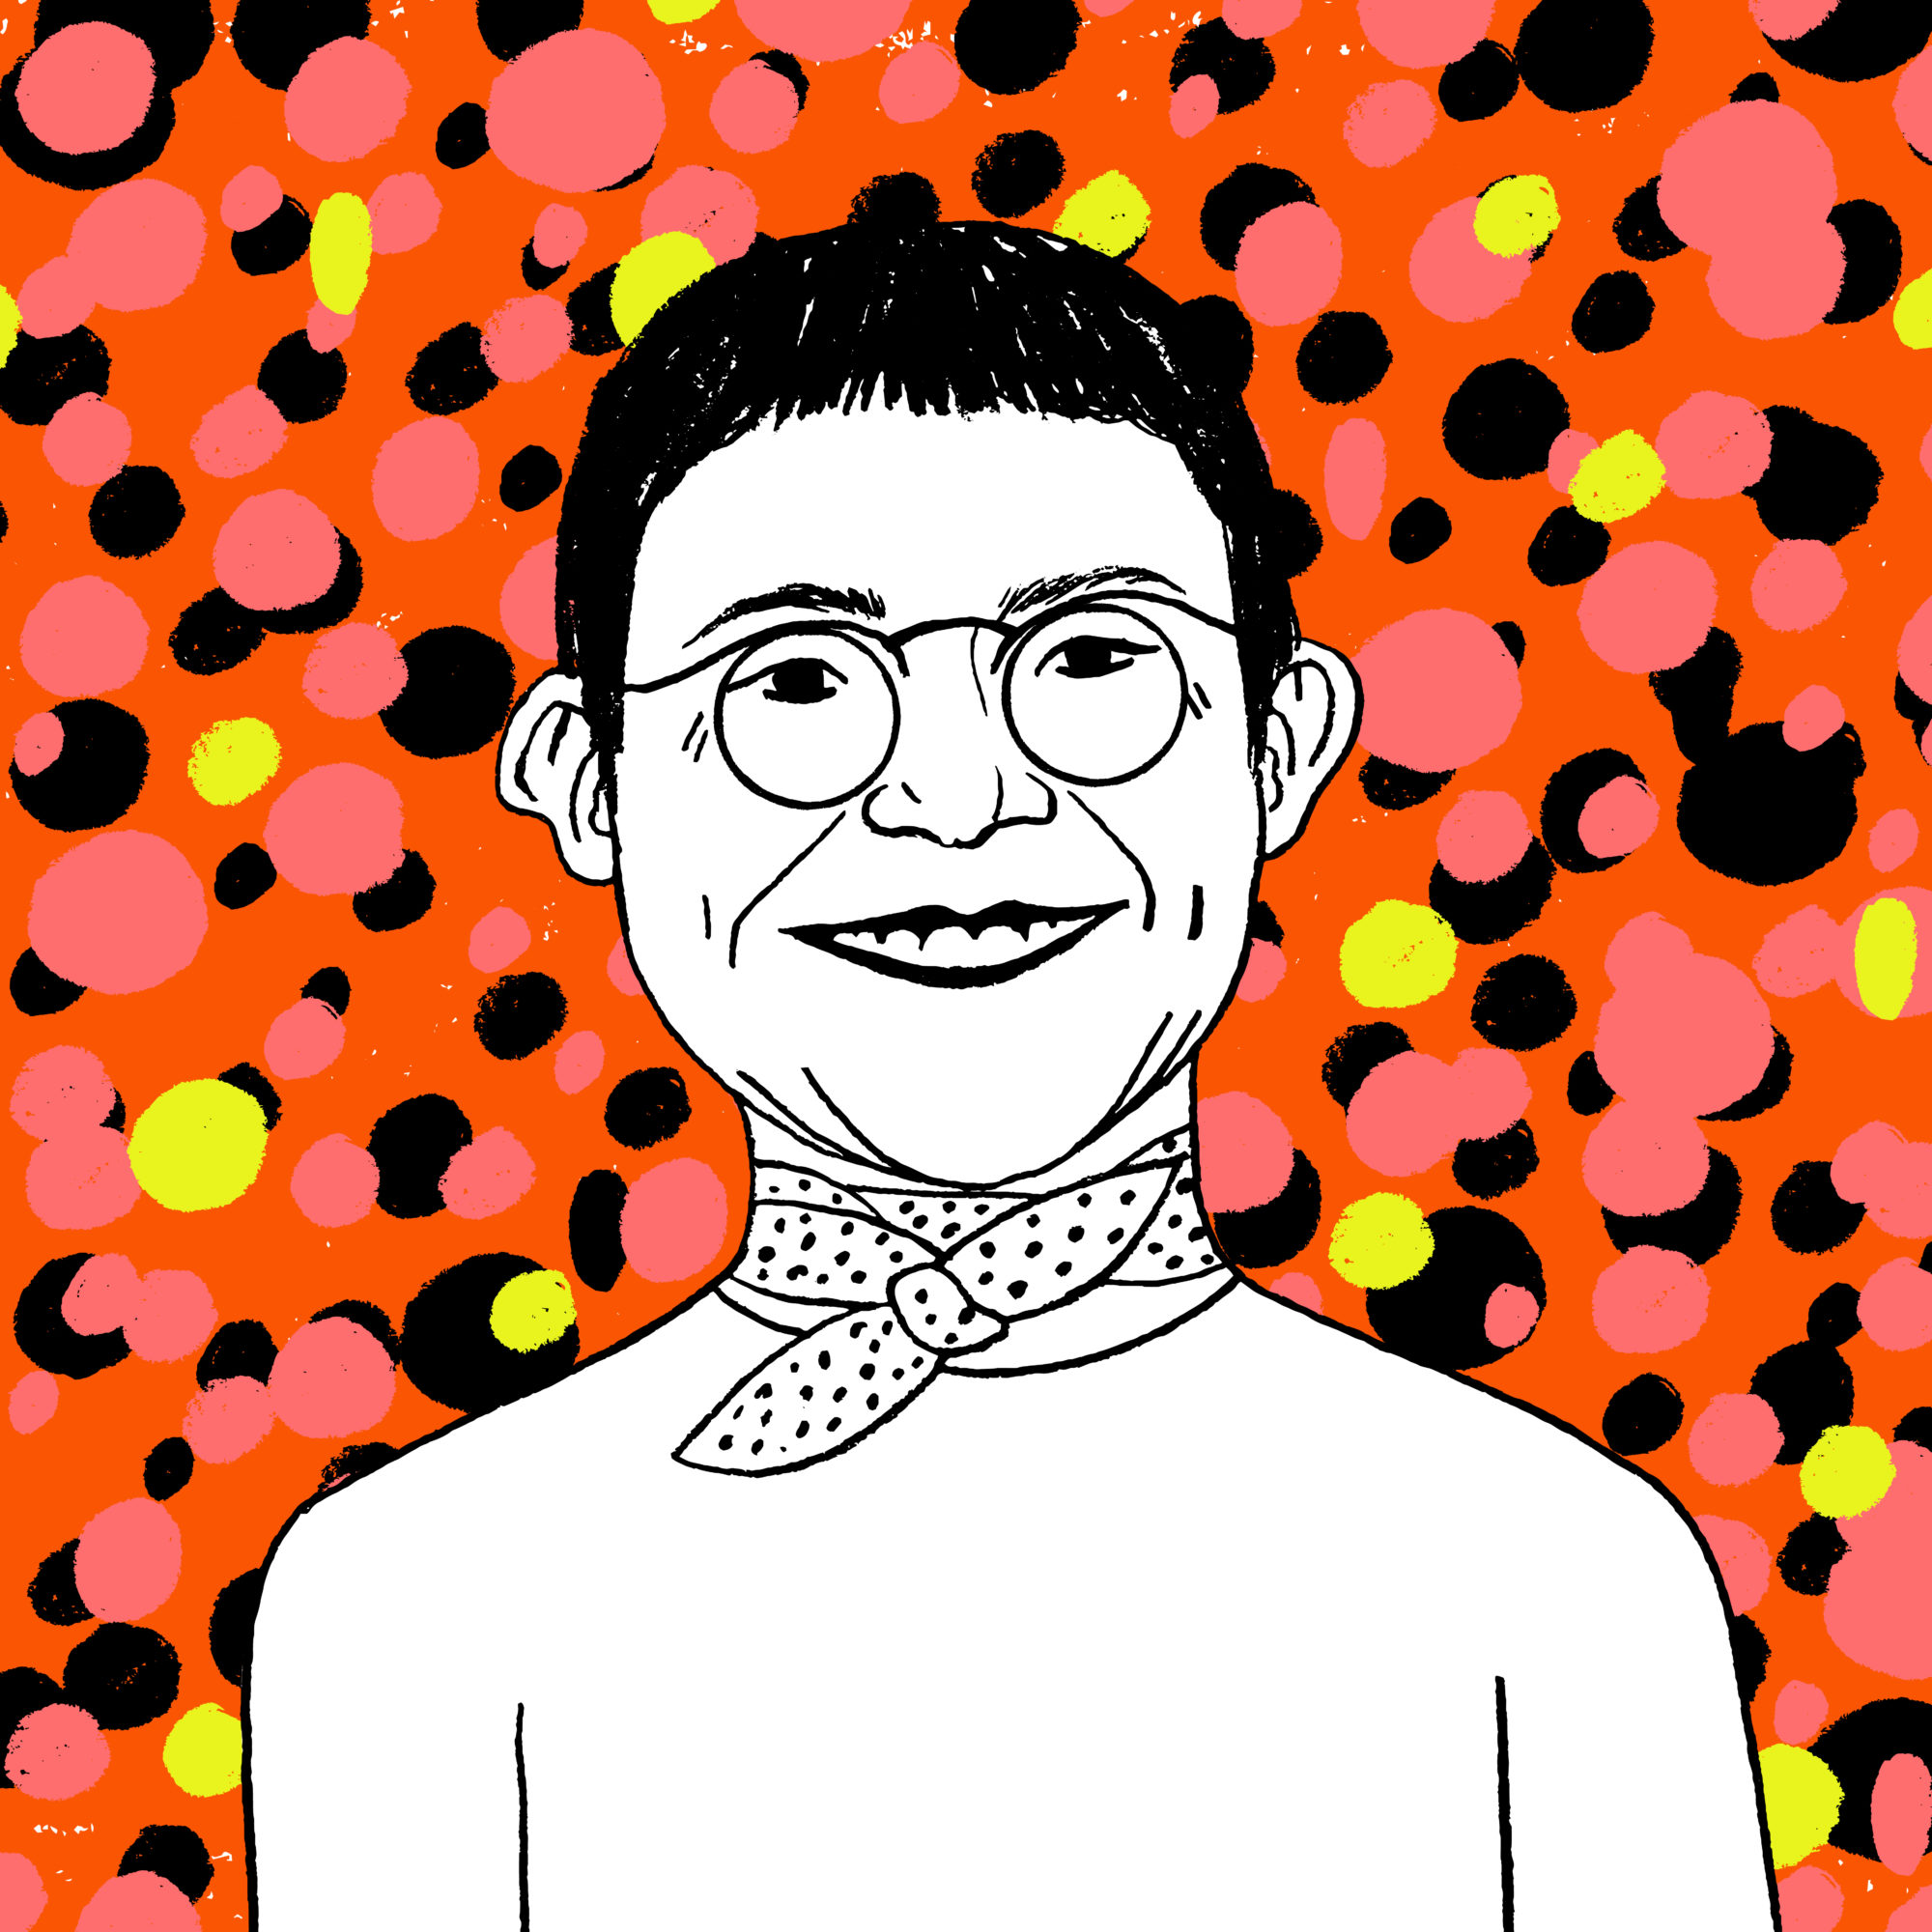 Taste_DGreenspan_PodcastPortrait-01